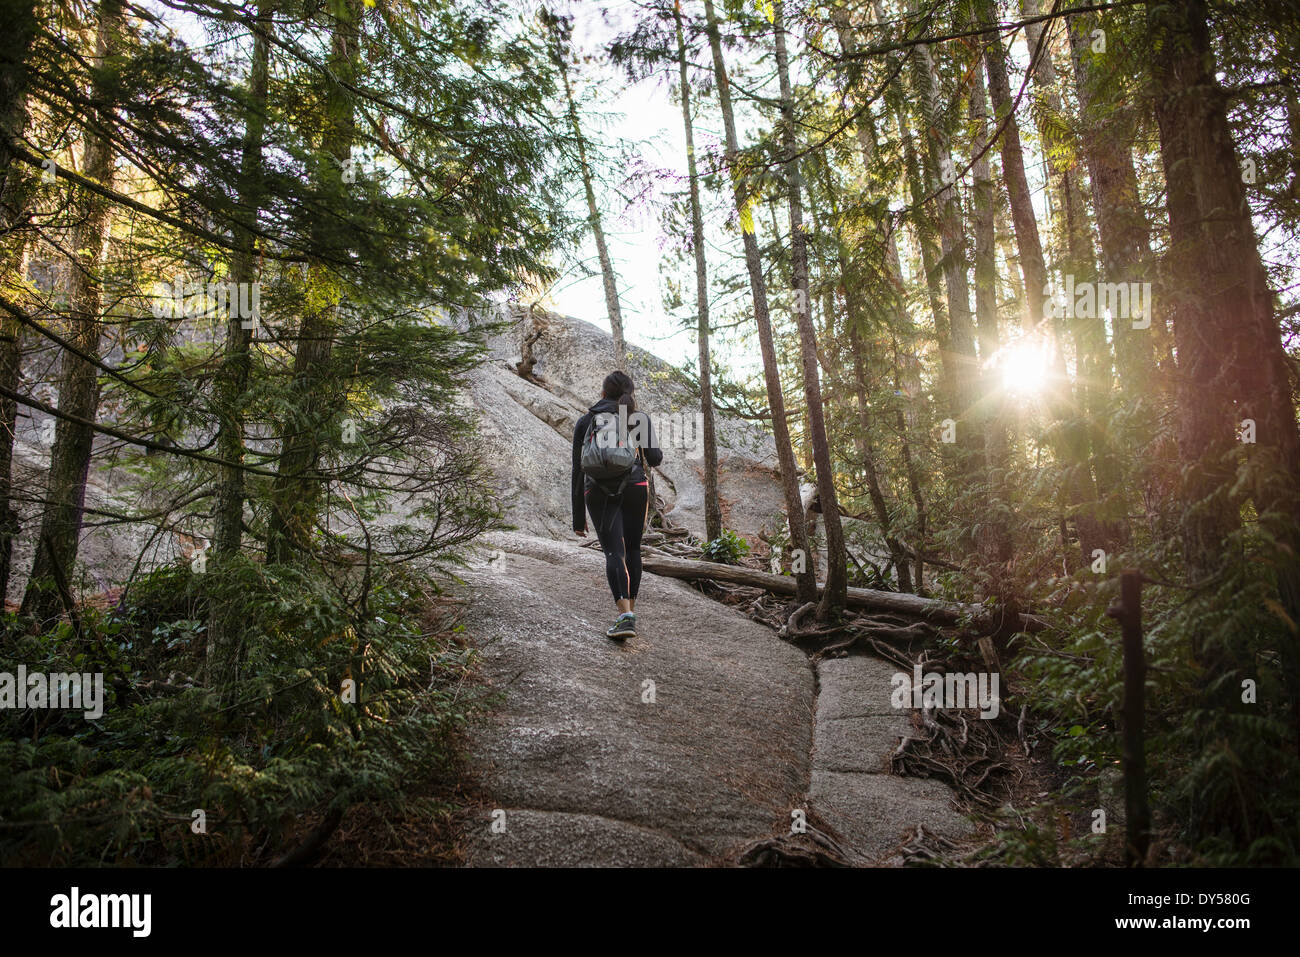 Young woman walking through forest, Squamish, British Columbia, Canada Stock Photo